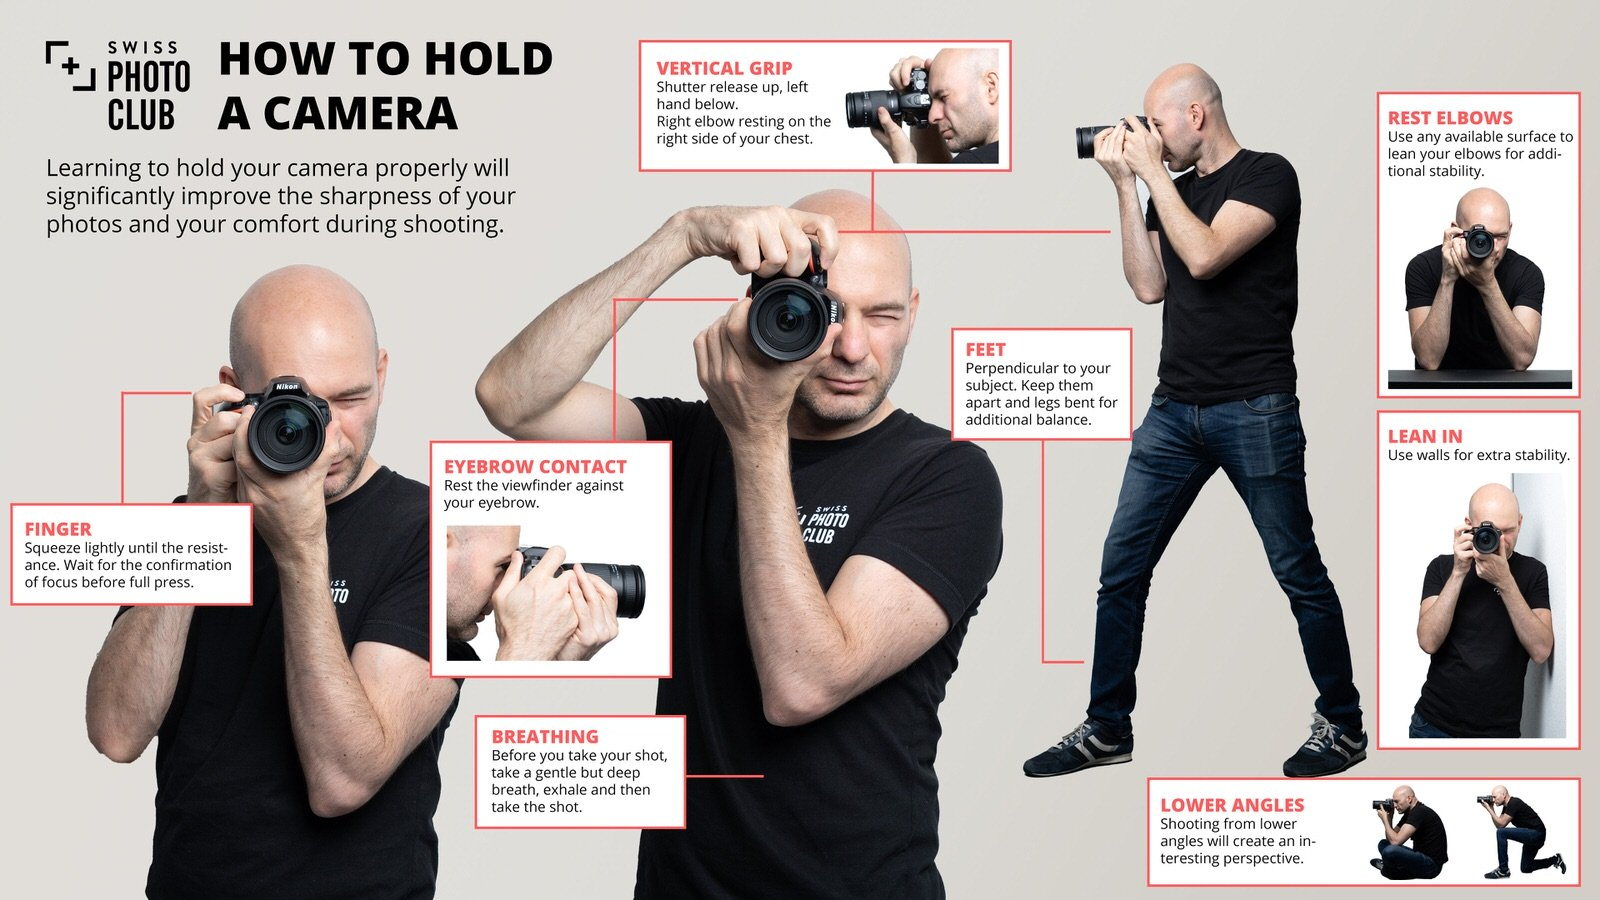 How to hold a camera - Swiss Photo Club